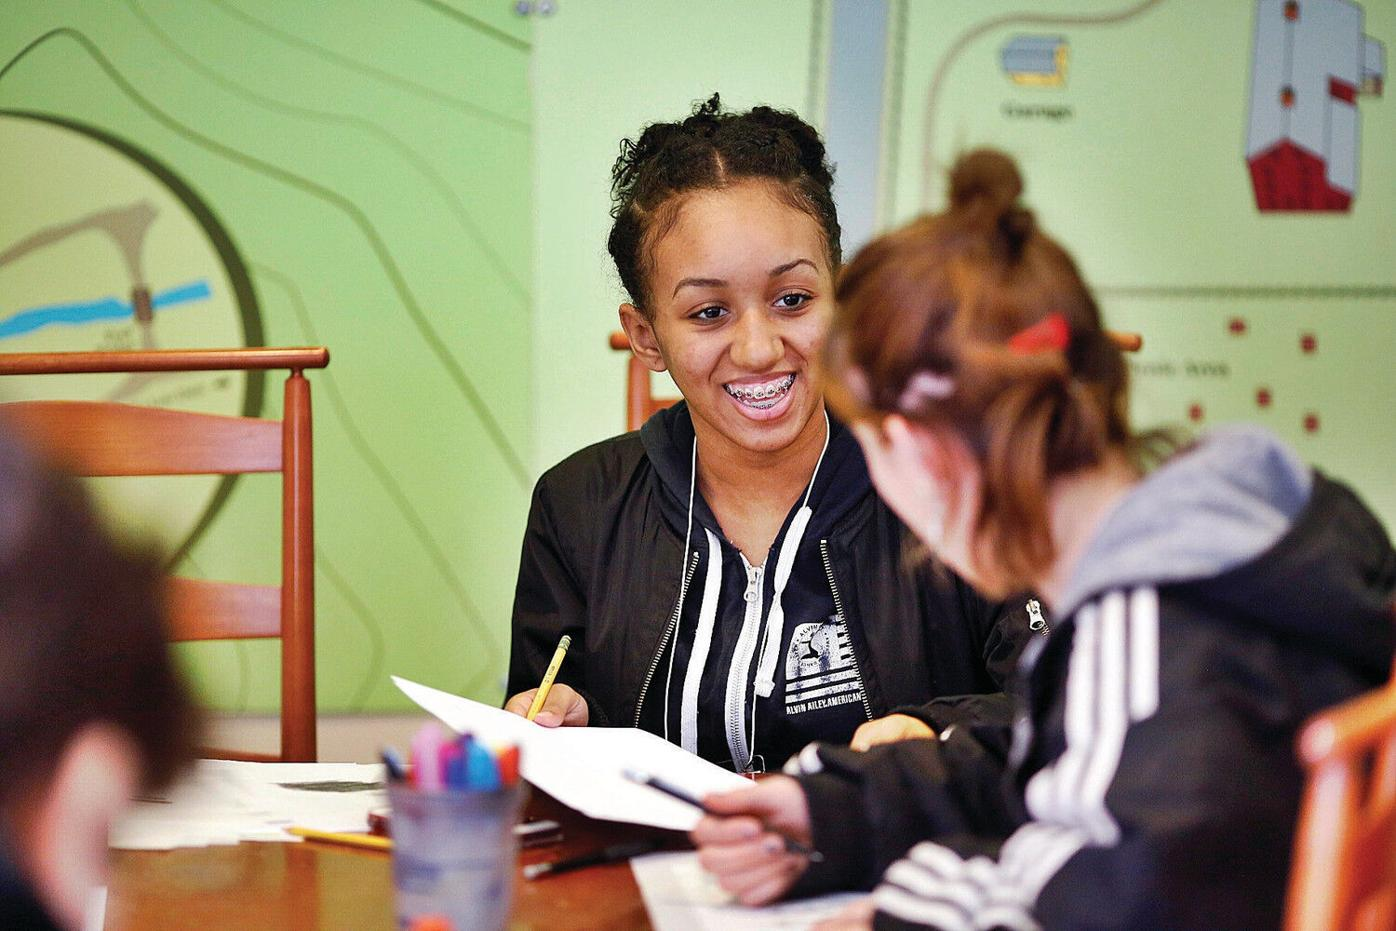 At conferences, students guided to face challenges, effect change